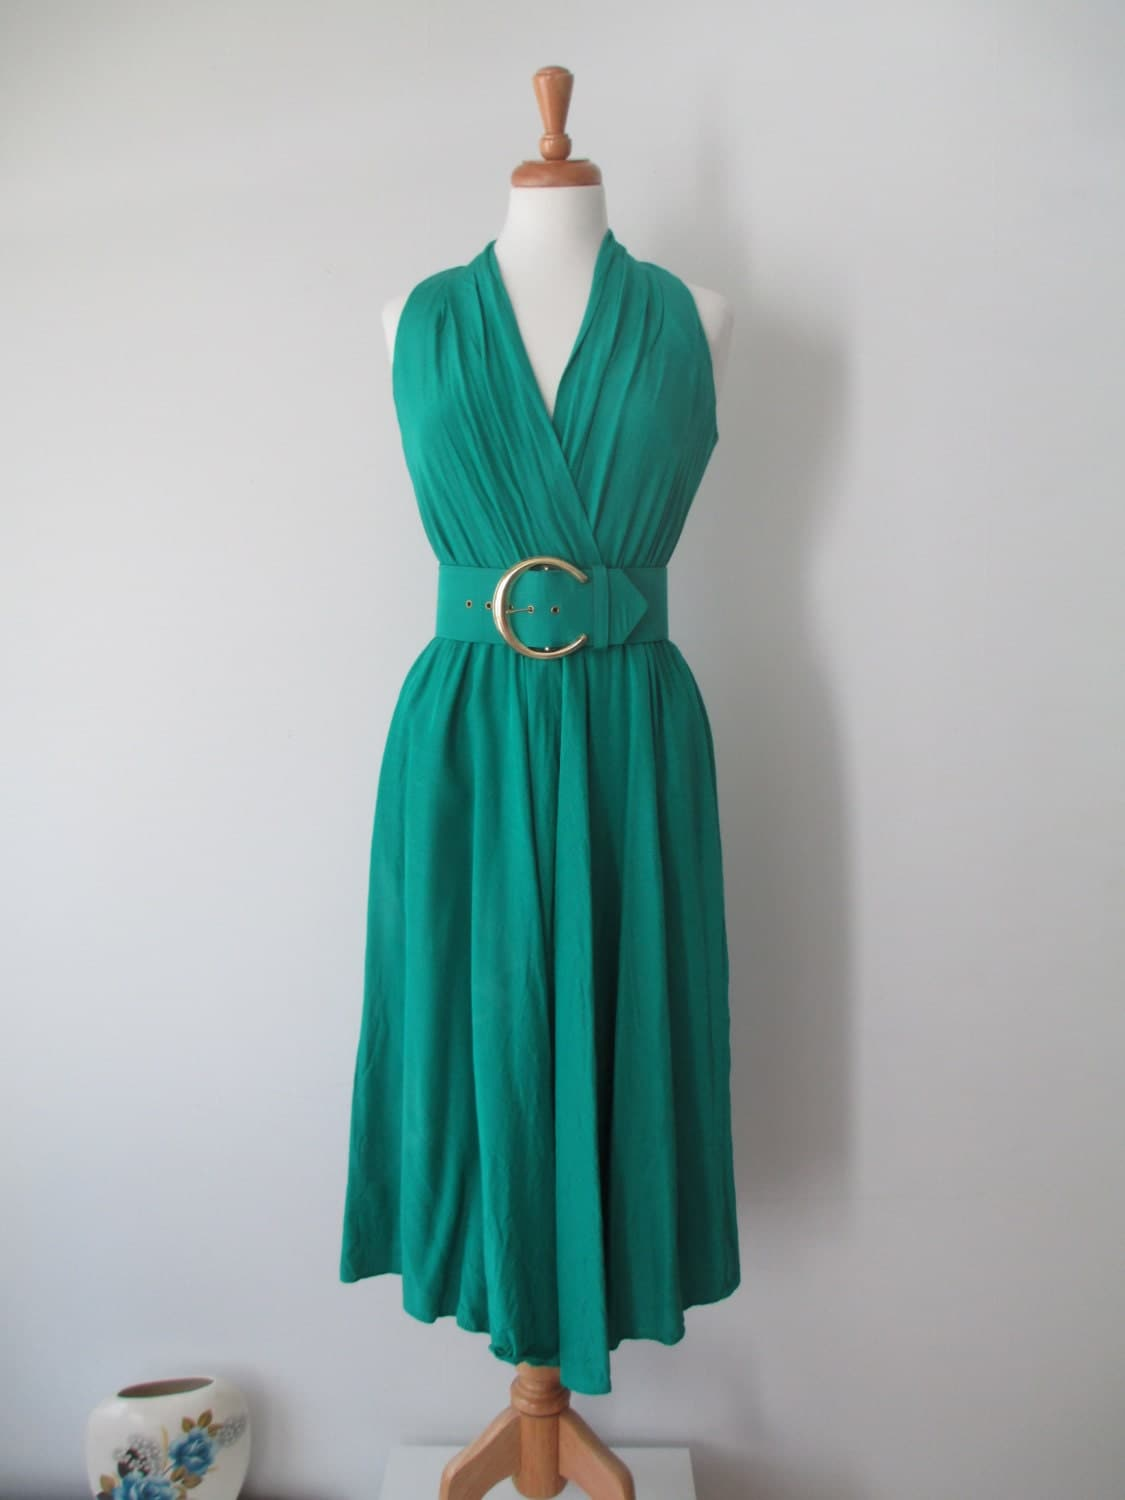 The Green Dirty Dancing Dress Small - LucyBlueVintage